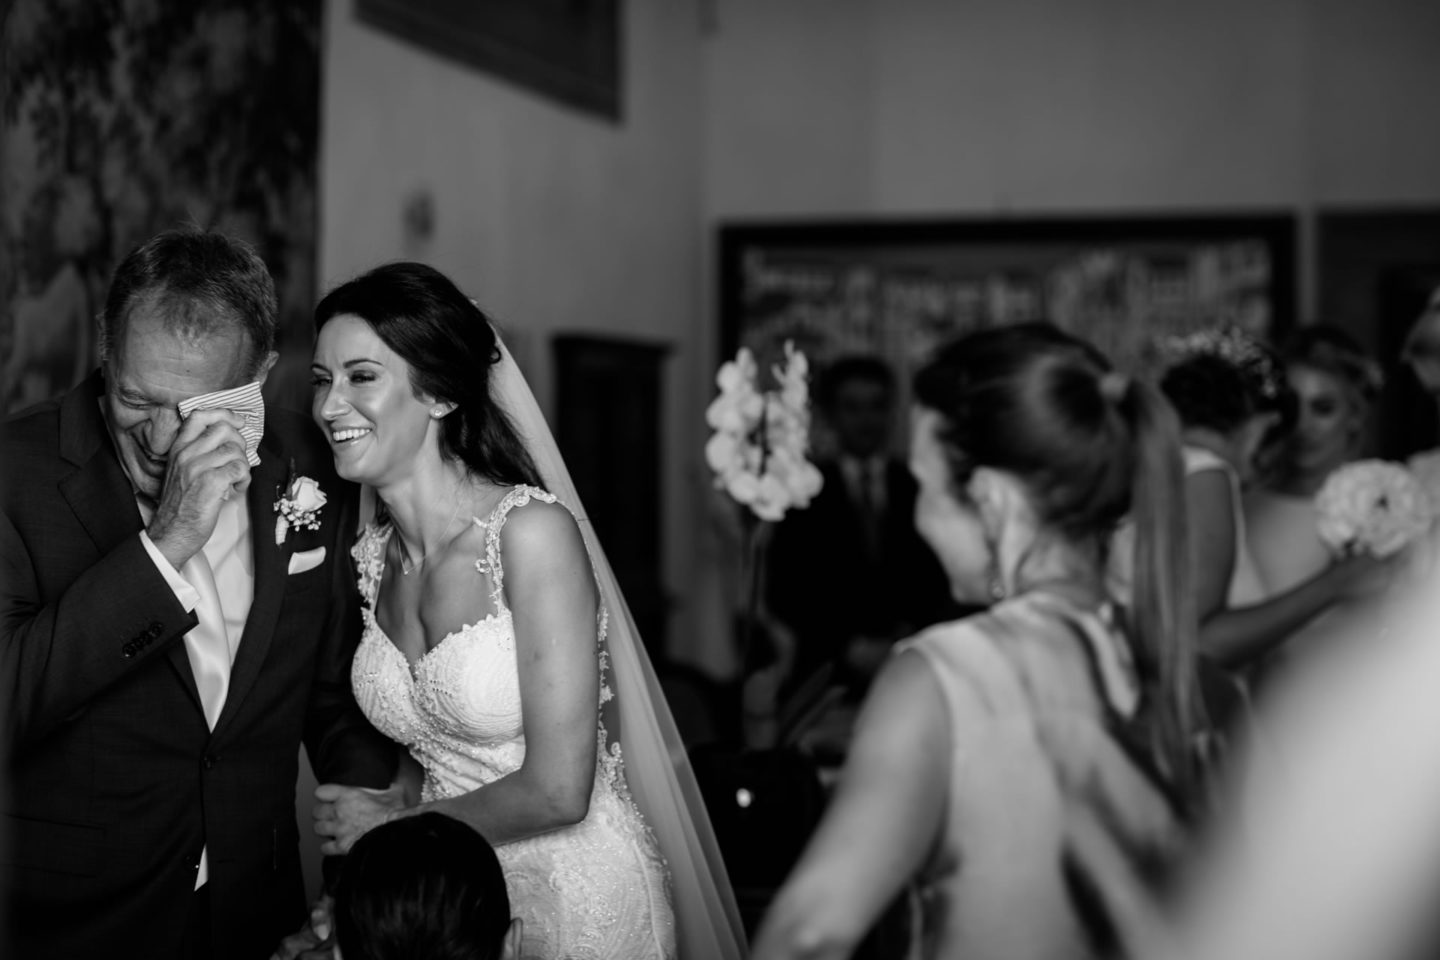 Emotion :: Crazy wedding at Vincigliata Castle and Villa San Michele :: Luxury wedding photography - 17 :: Emotion